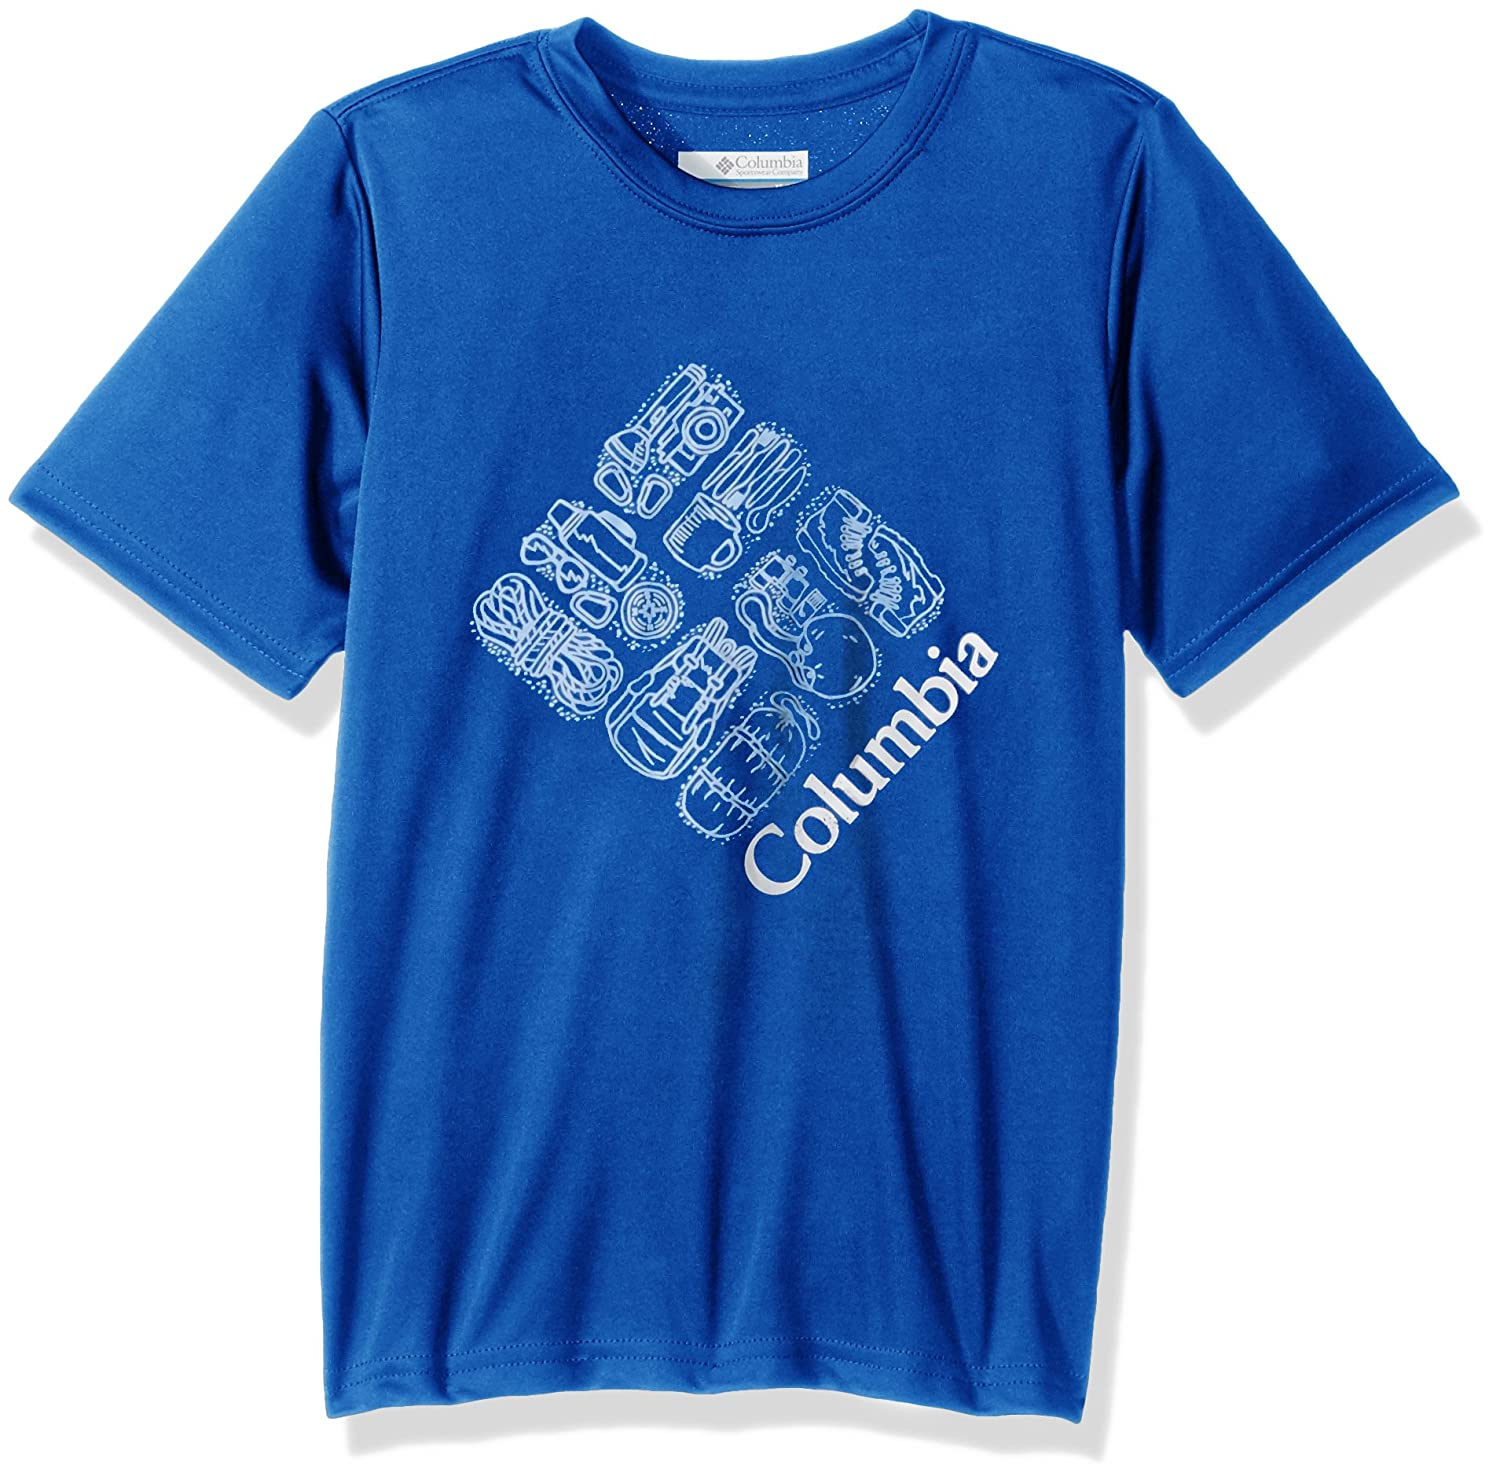 Columbia Boys' Shirt Columbia Children' s Apparel 1715371